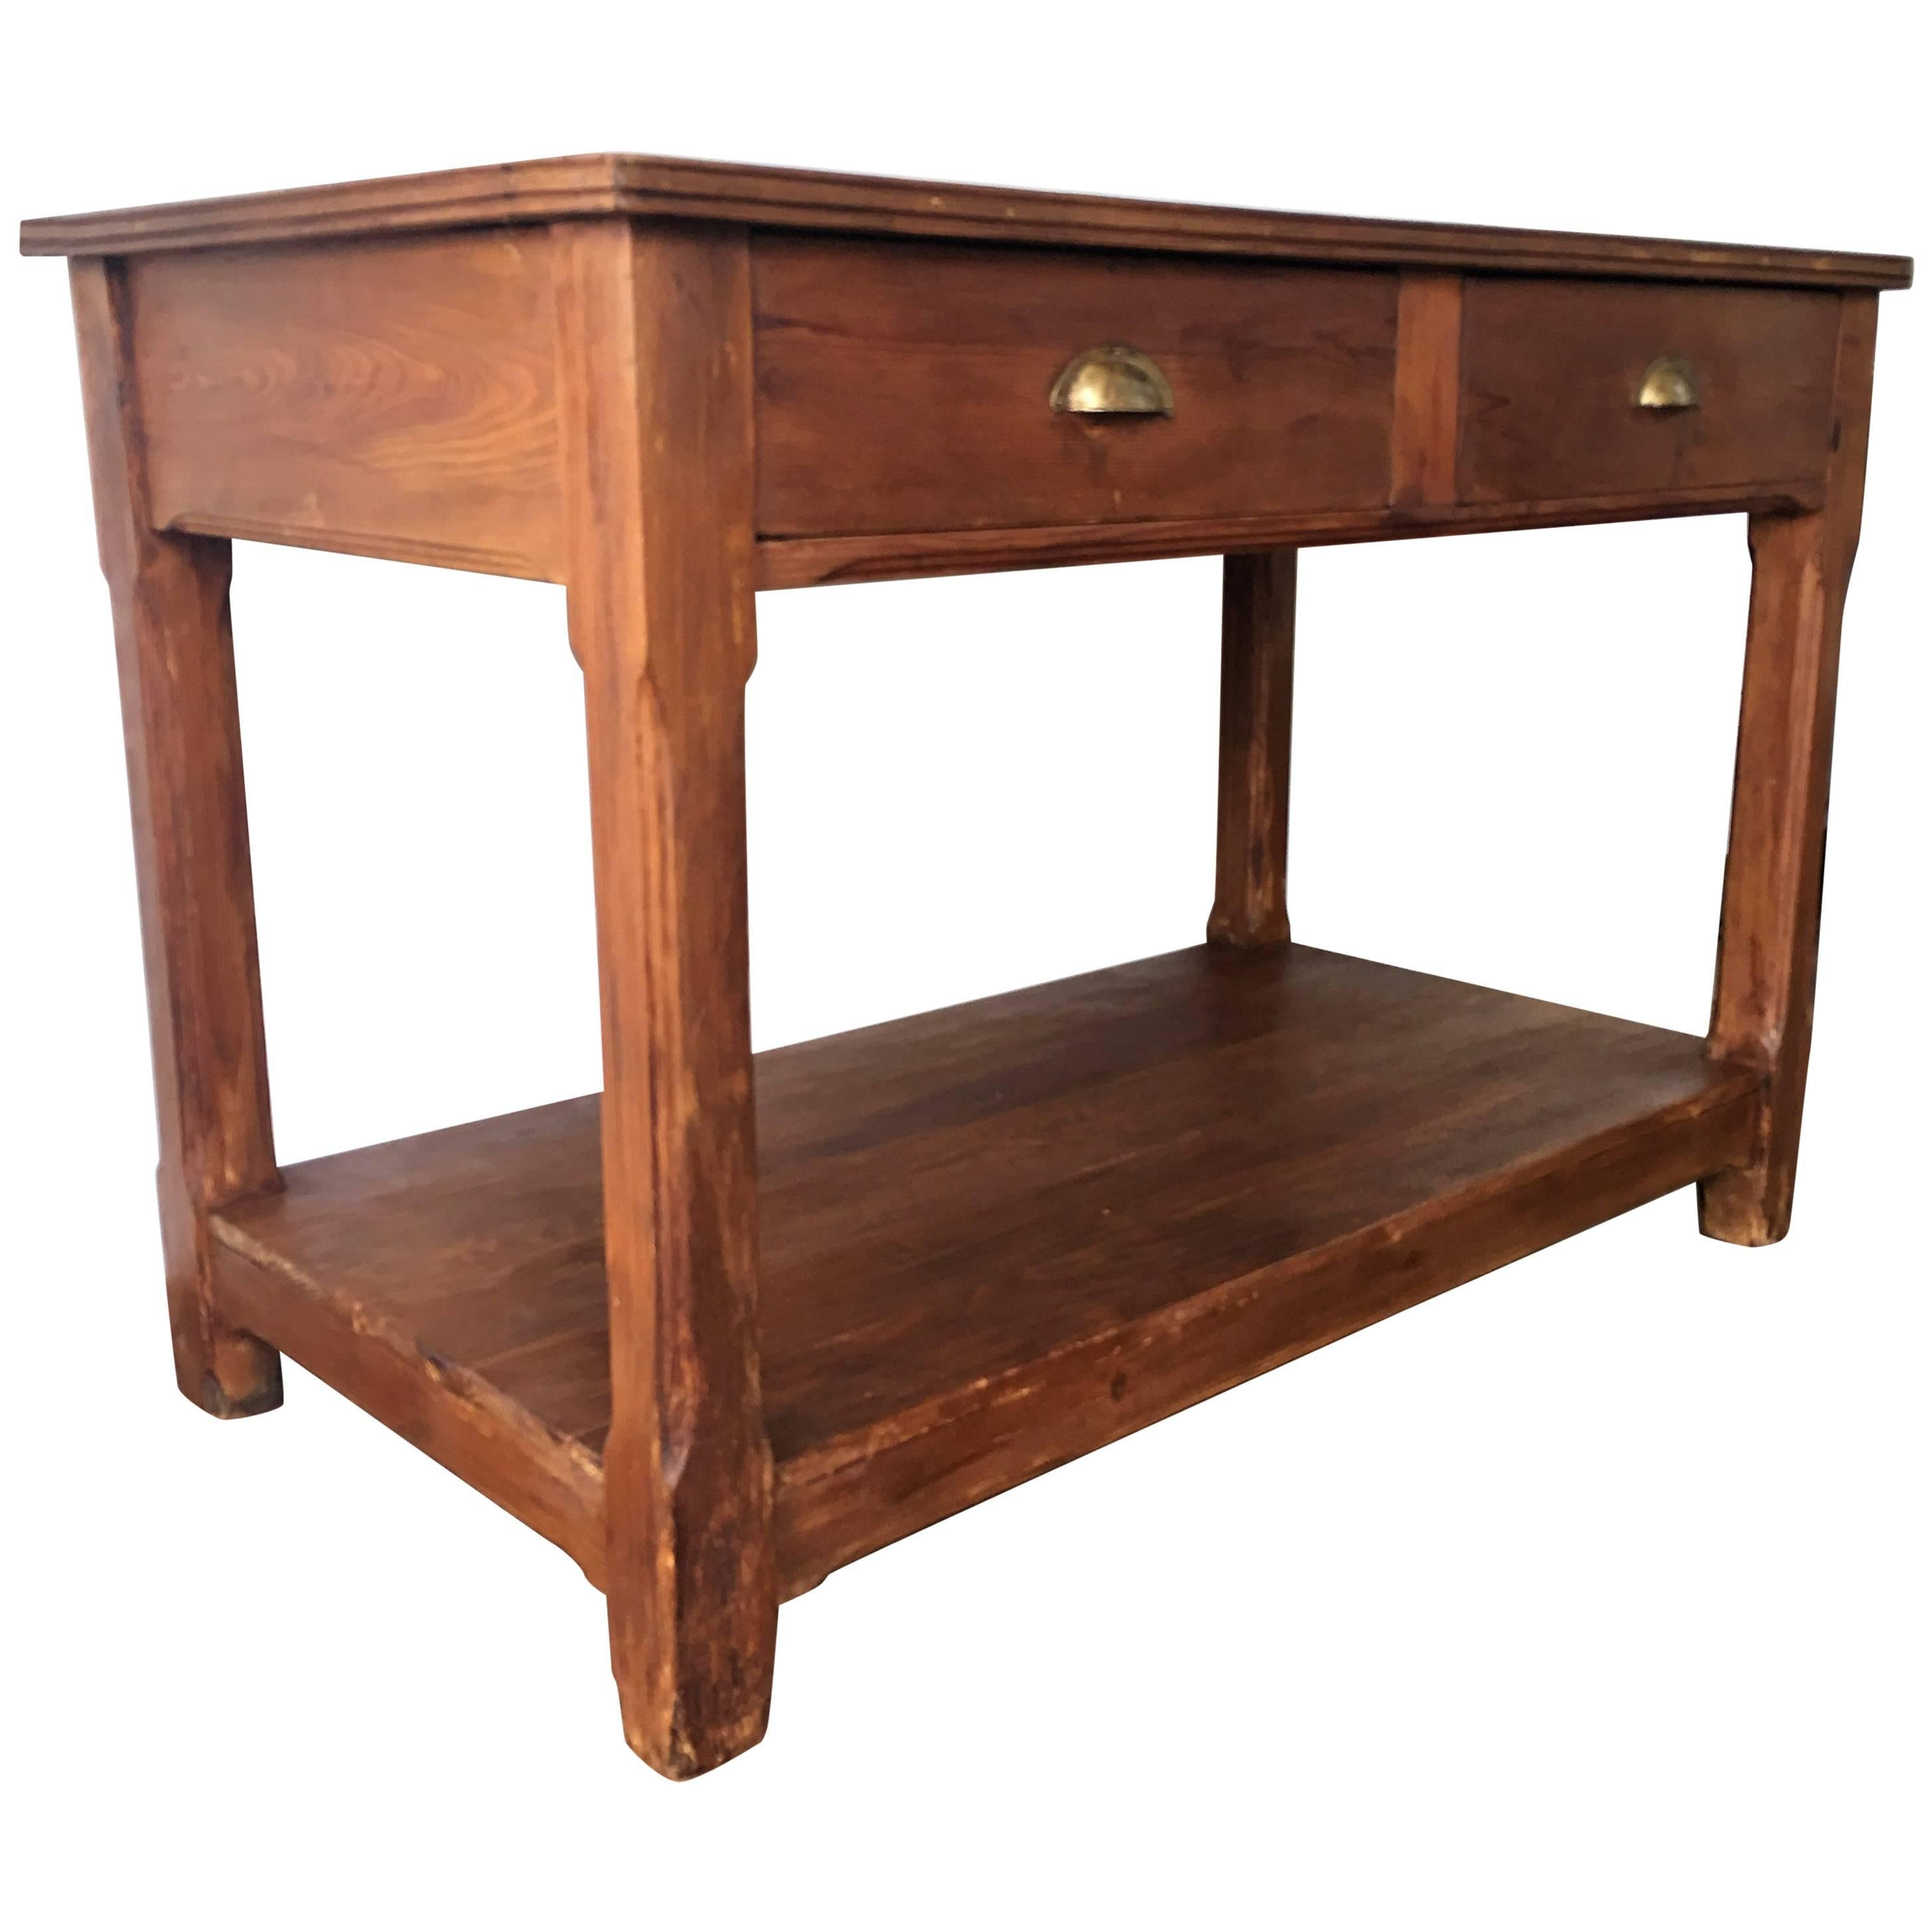 20th Century Pine Kitchen Table, Country Farm Table With Two Drawers 1